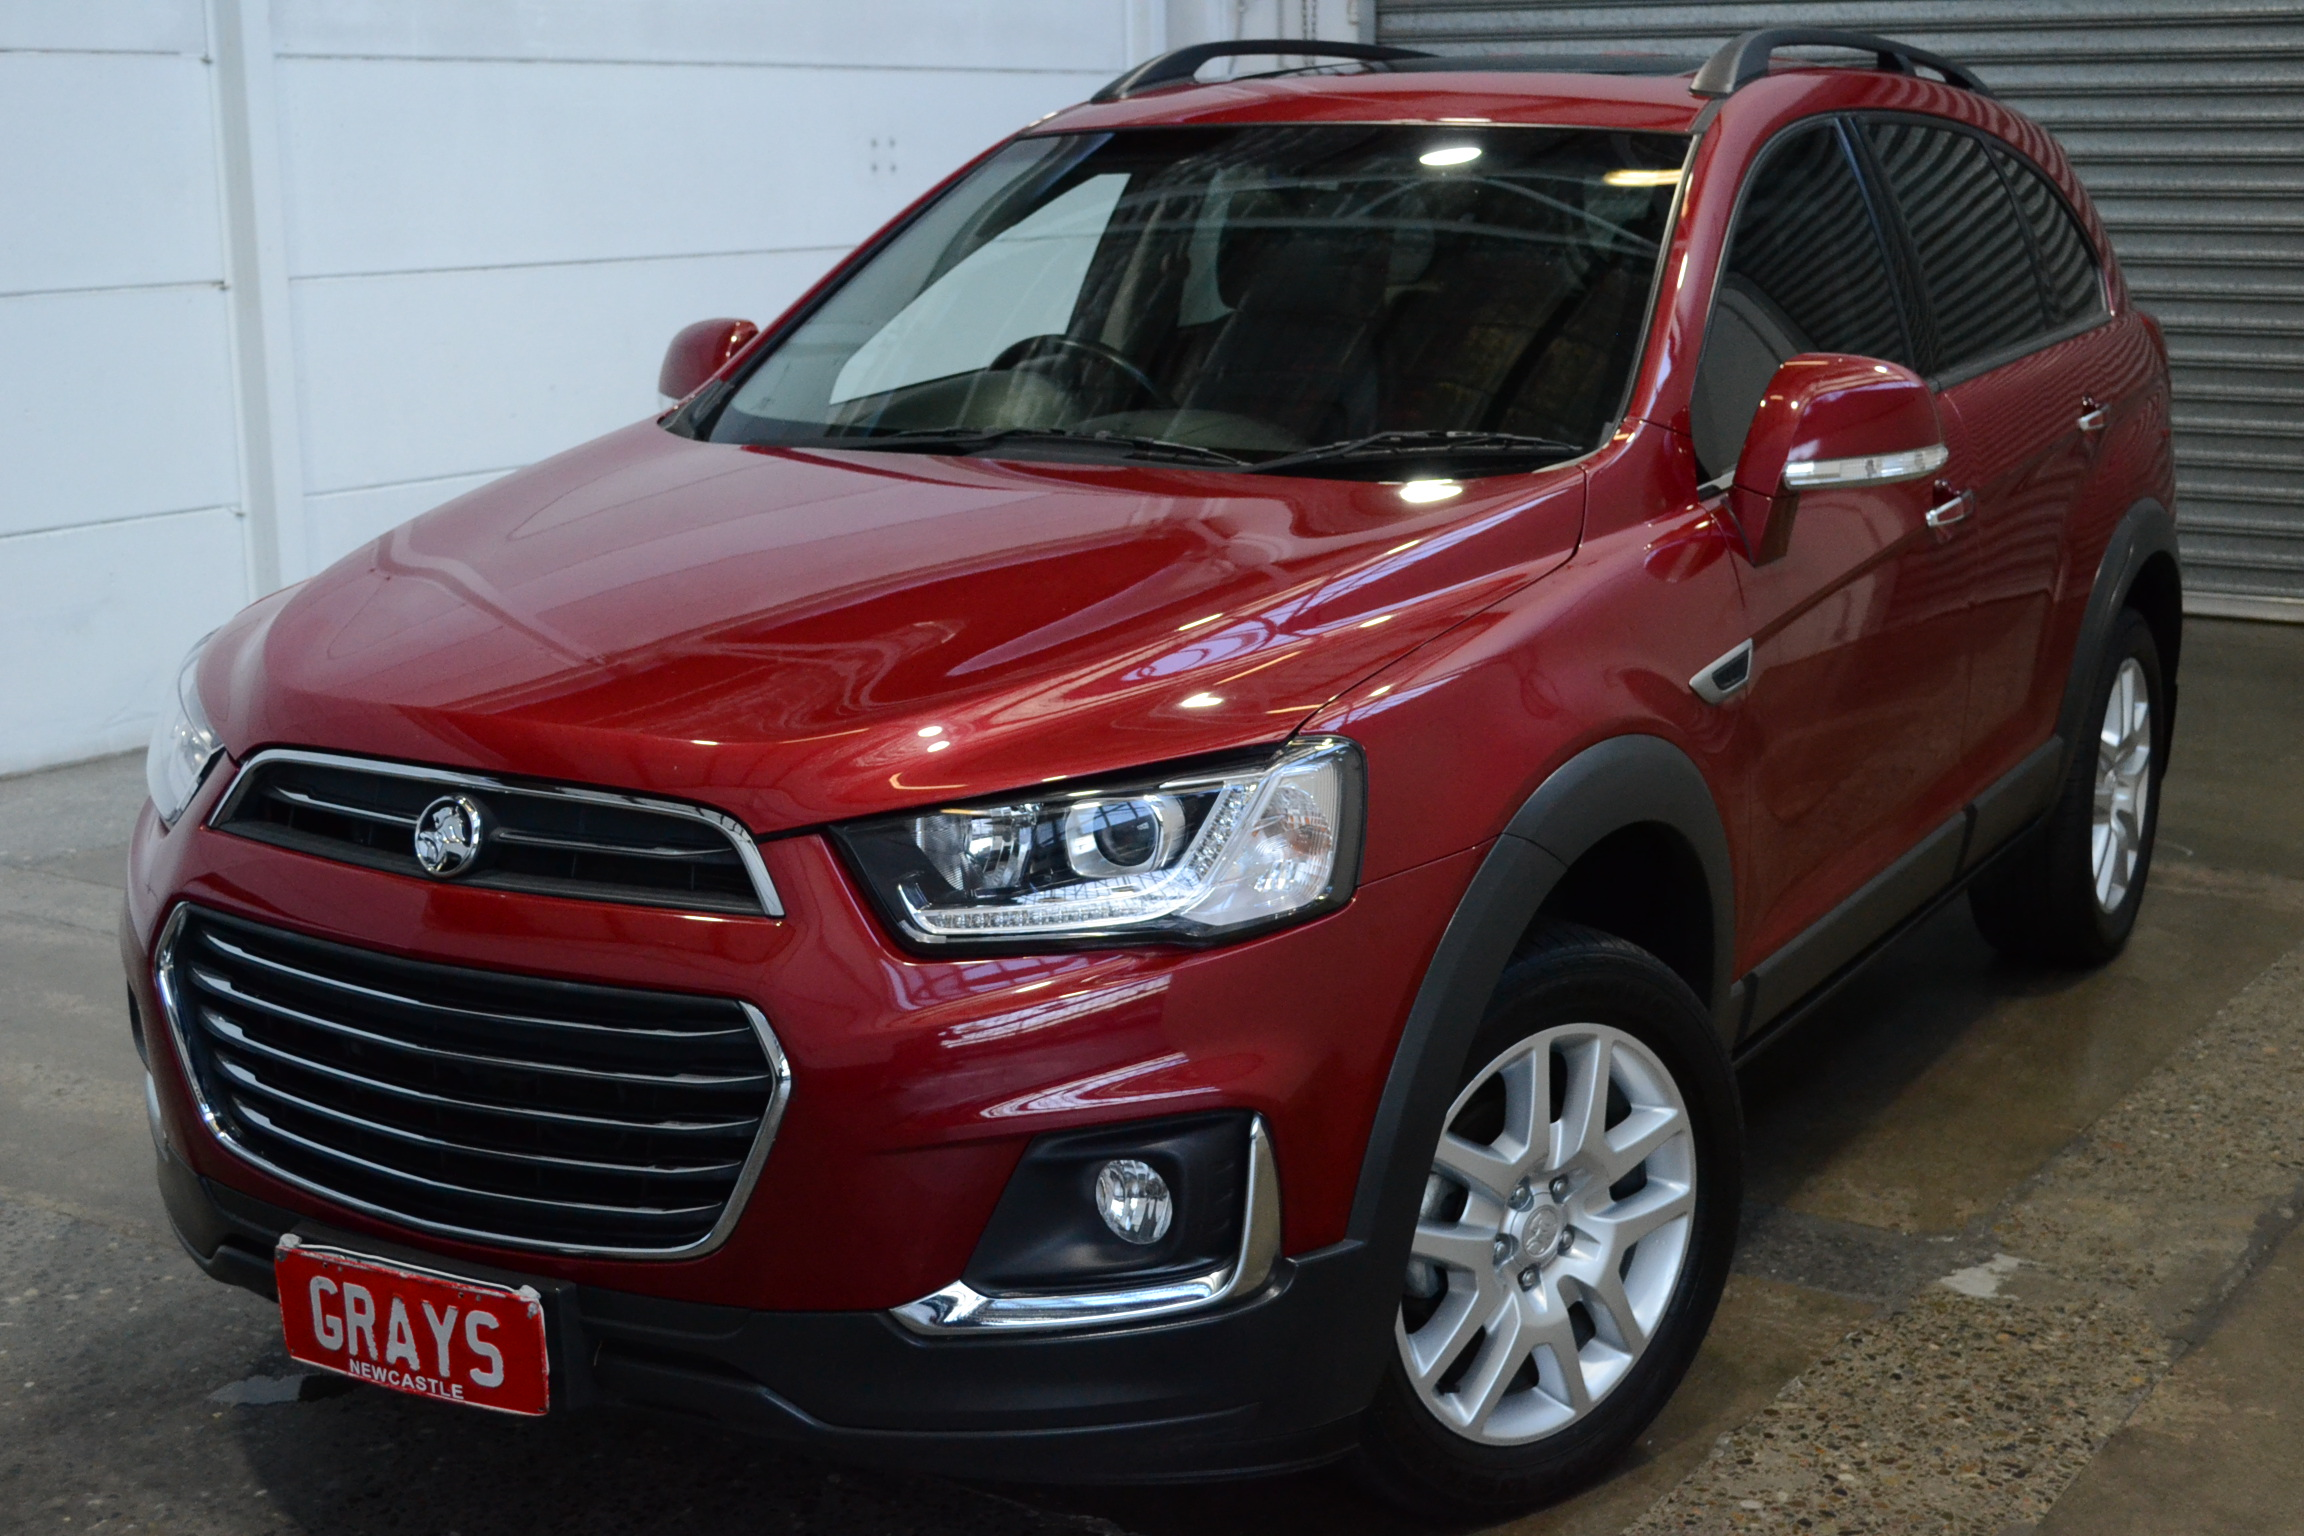 2016 Holden Captiva 7 ACTIVE LE 2WD CG II Automatic 7 Seats Wagon